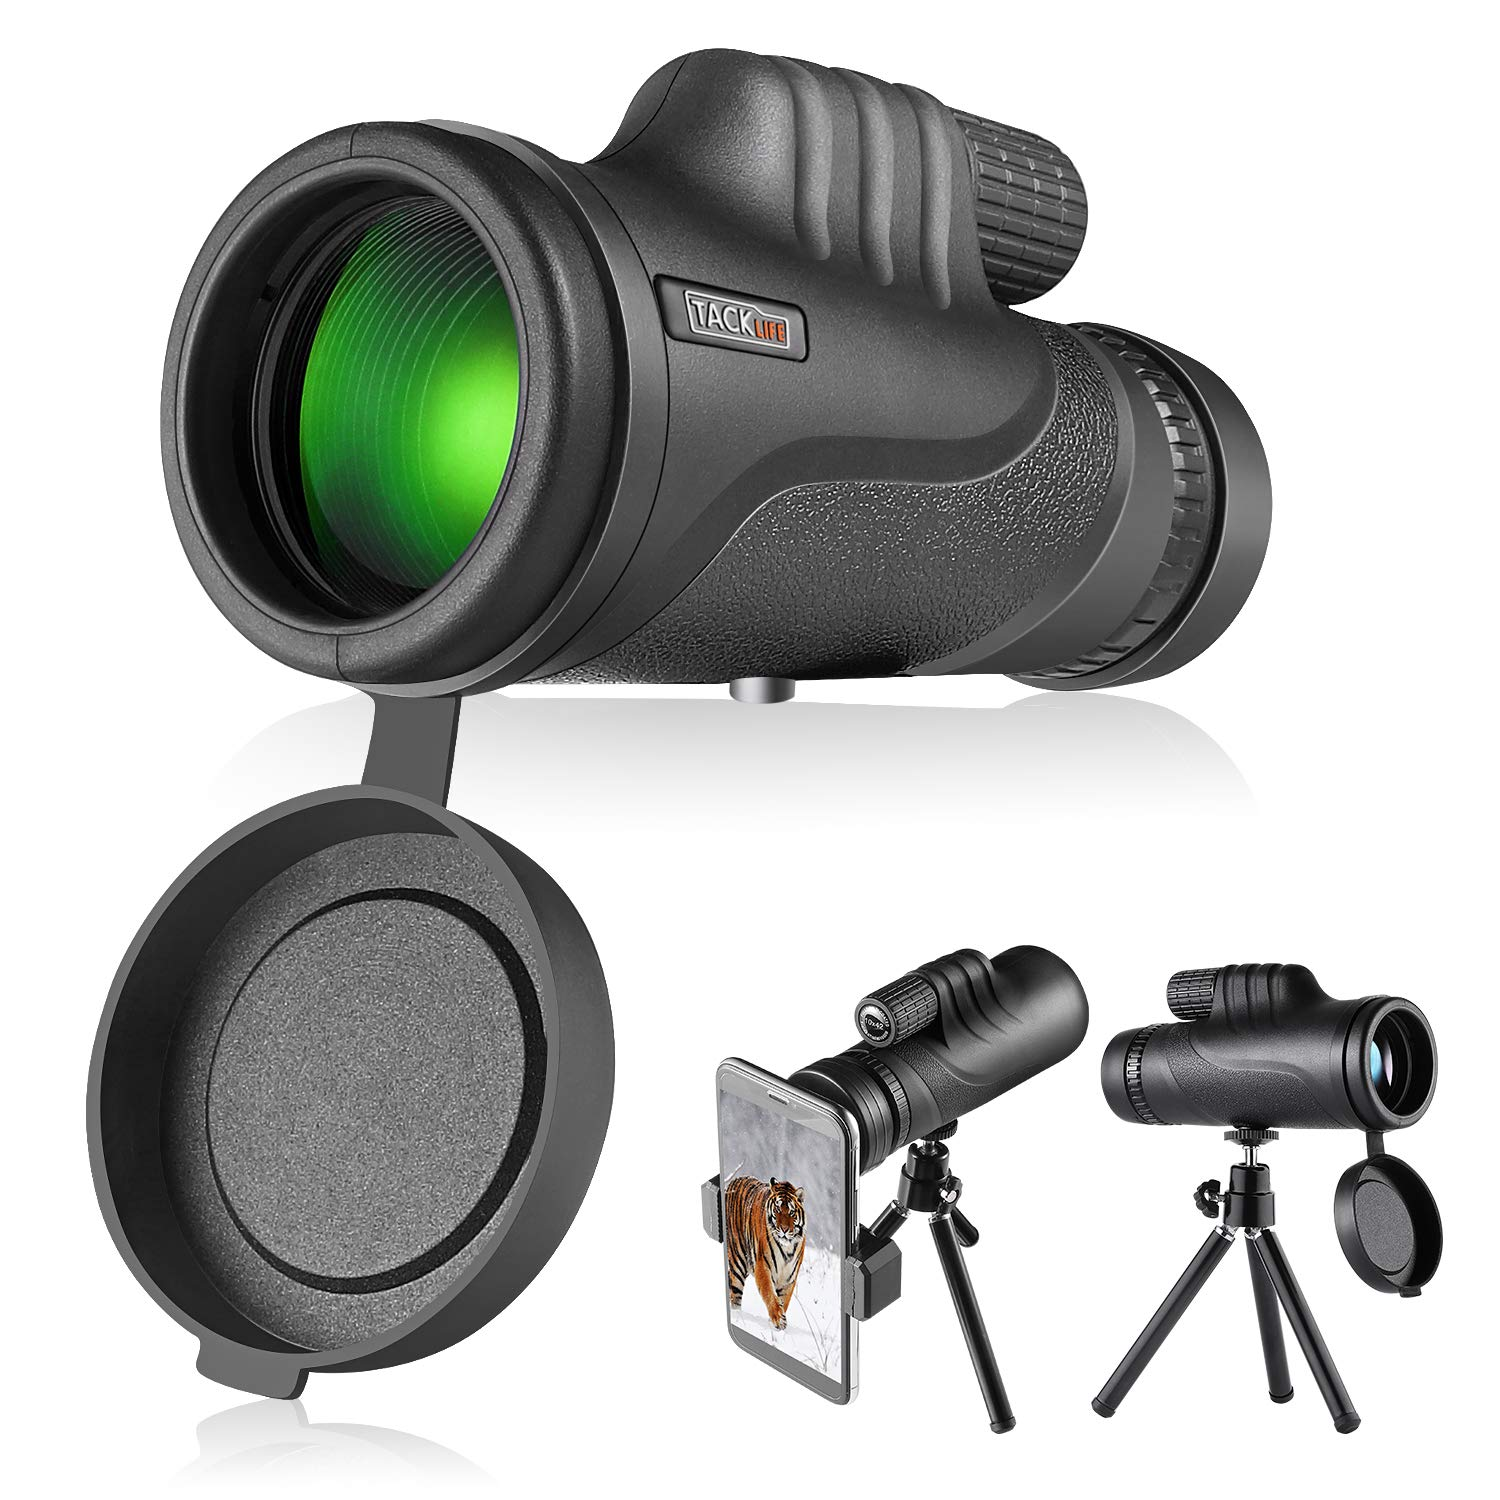 TACKLIFE Monocular Telescope, Monocular Scope with BAK4 Prism, Rotating Eye Mask, Multi-Green Coated Lens for Bird Watching, Hunting, Camping, Phone Adapter and Compact Tripod Include - MCL01 by TACKLIFE